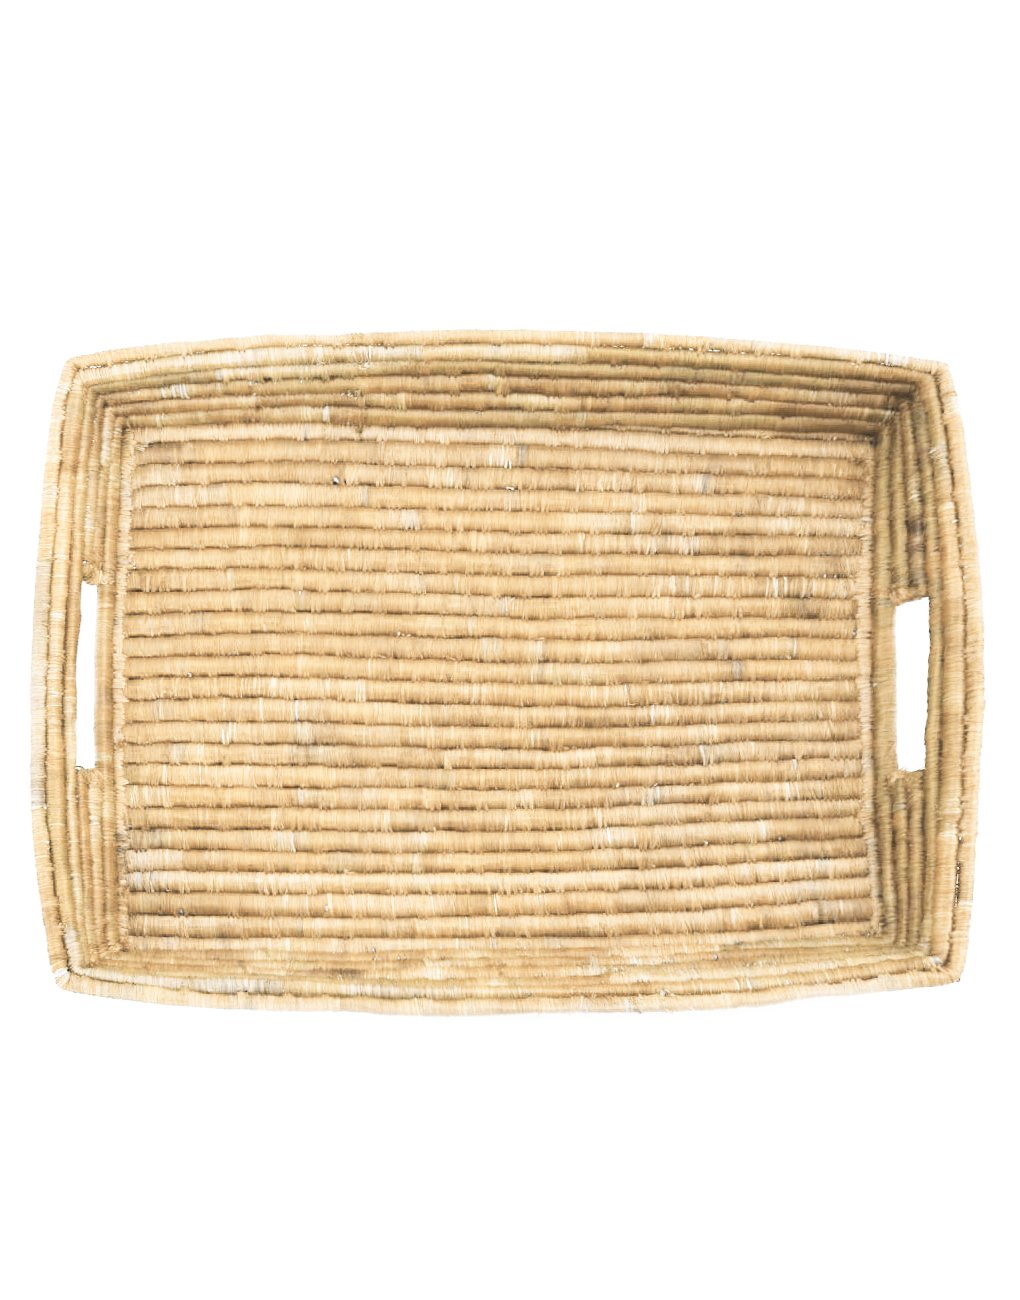 Woven Serving Tray - The Citizenry